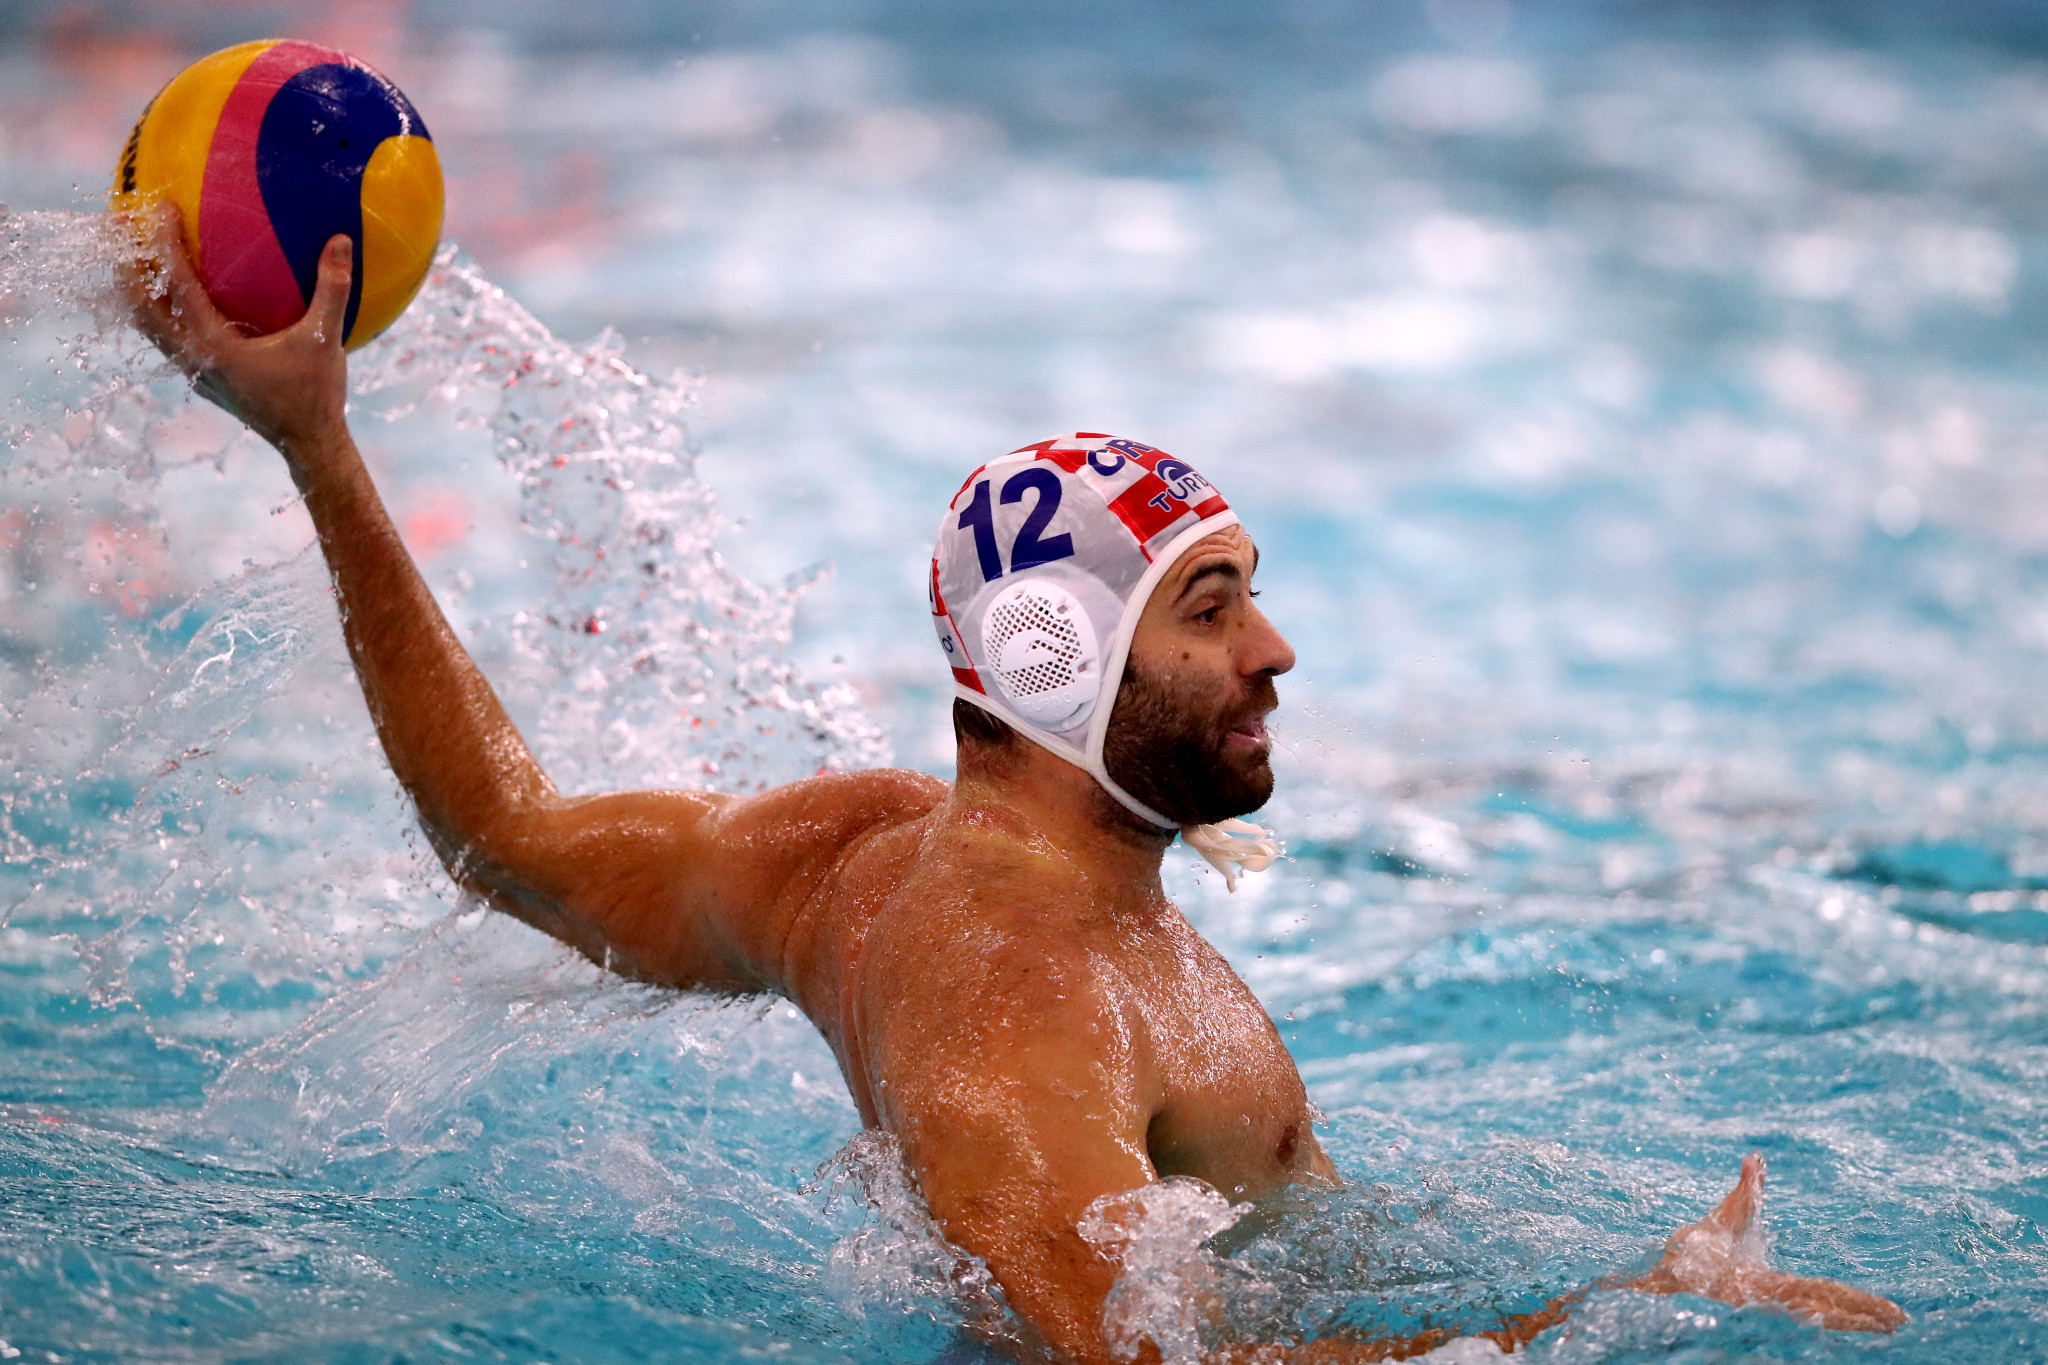 Javier Gadea Garcia helped Croatia run out convincing 15-6 winners over Georgia ©Getty Images